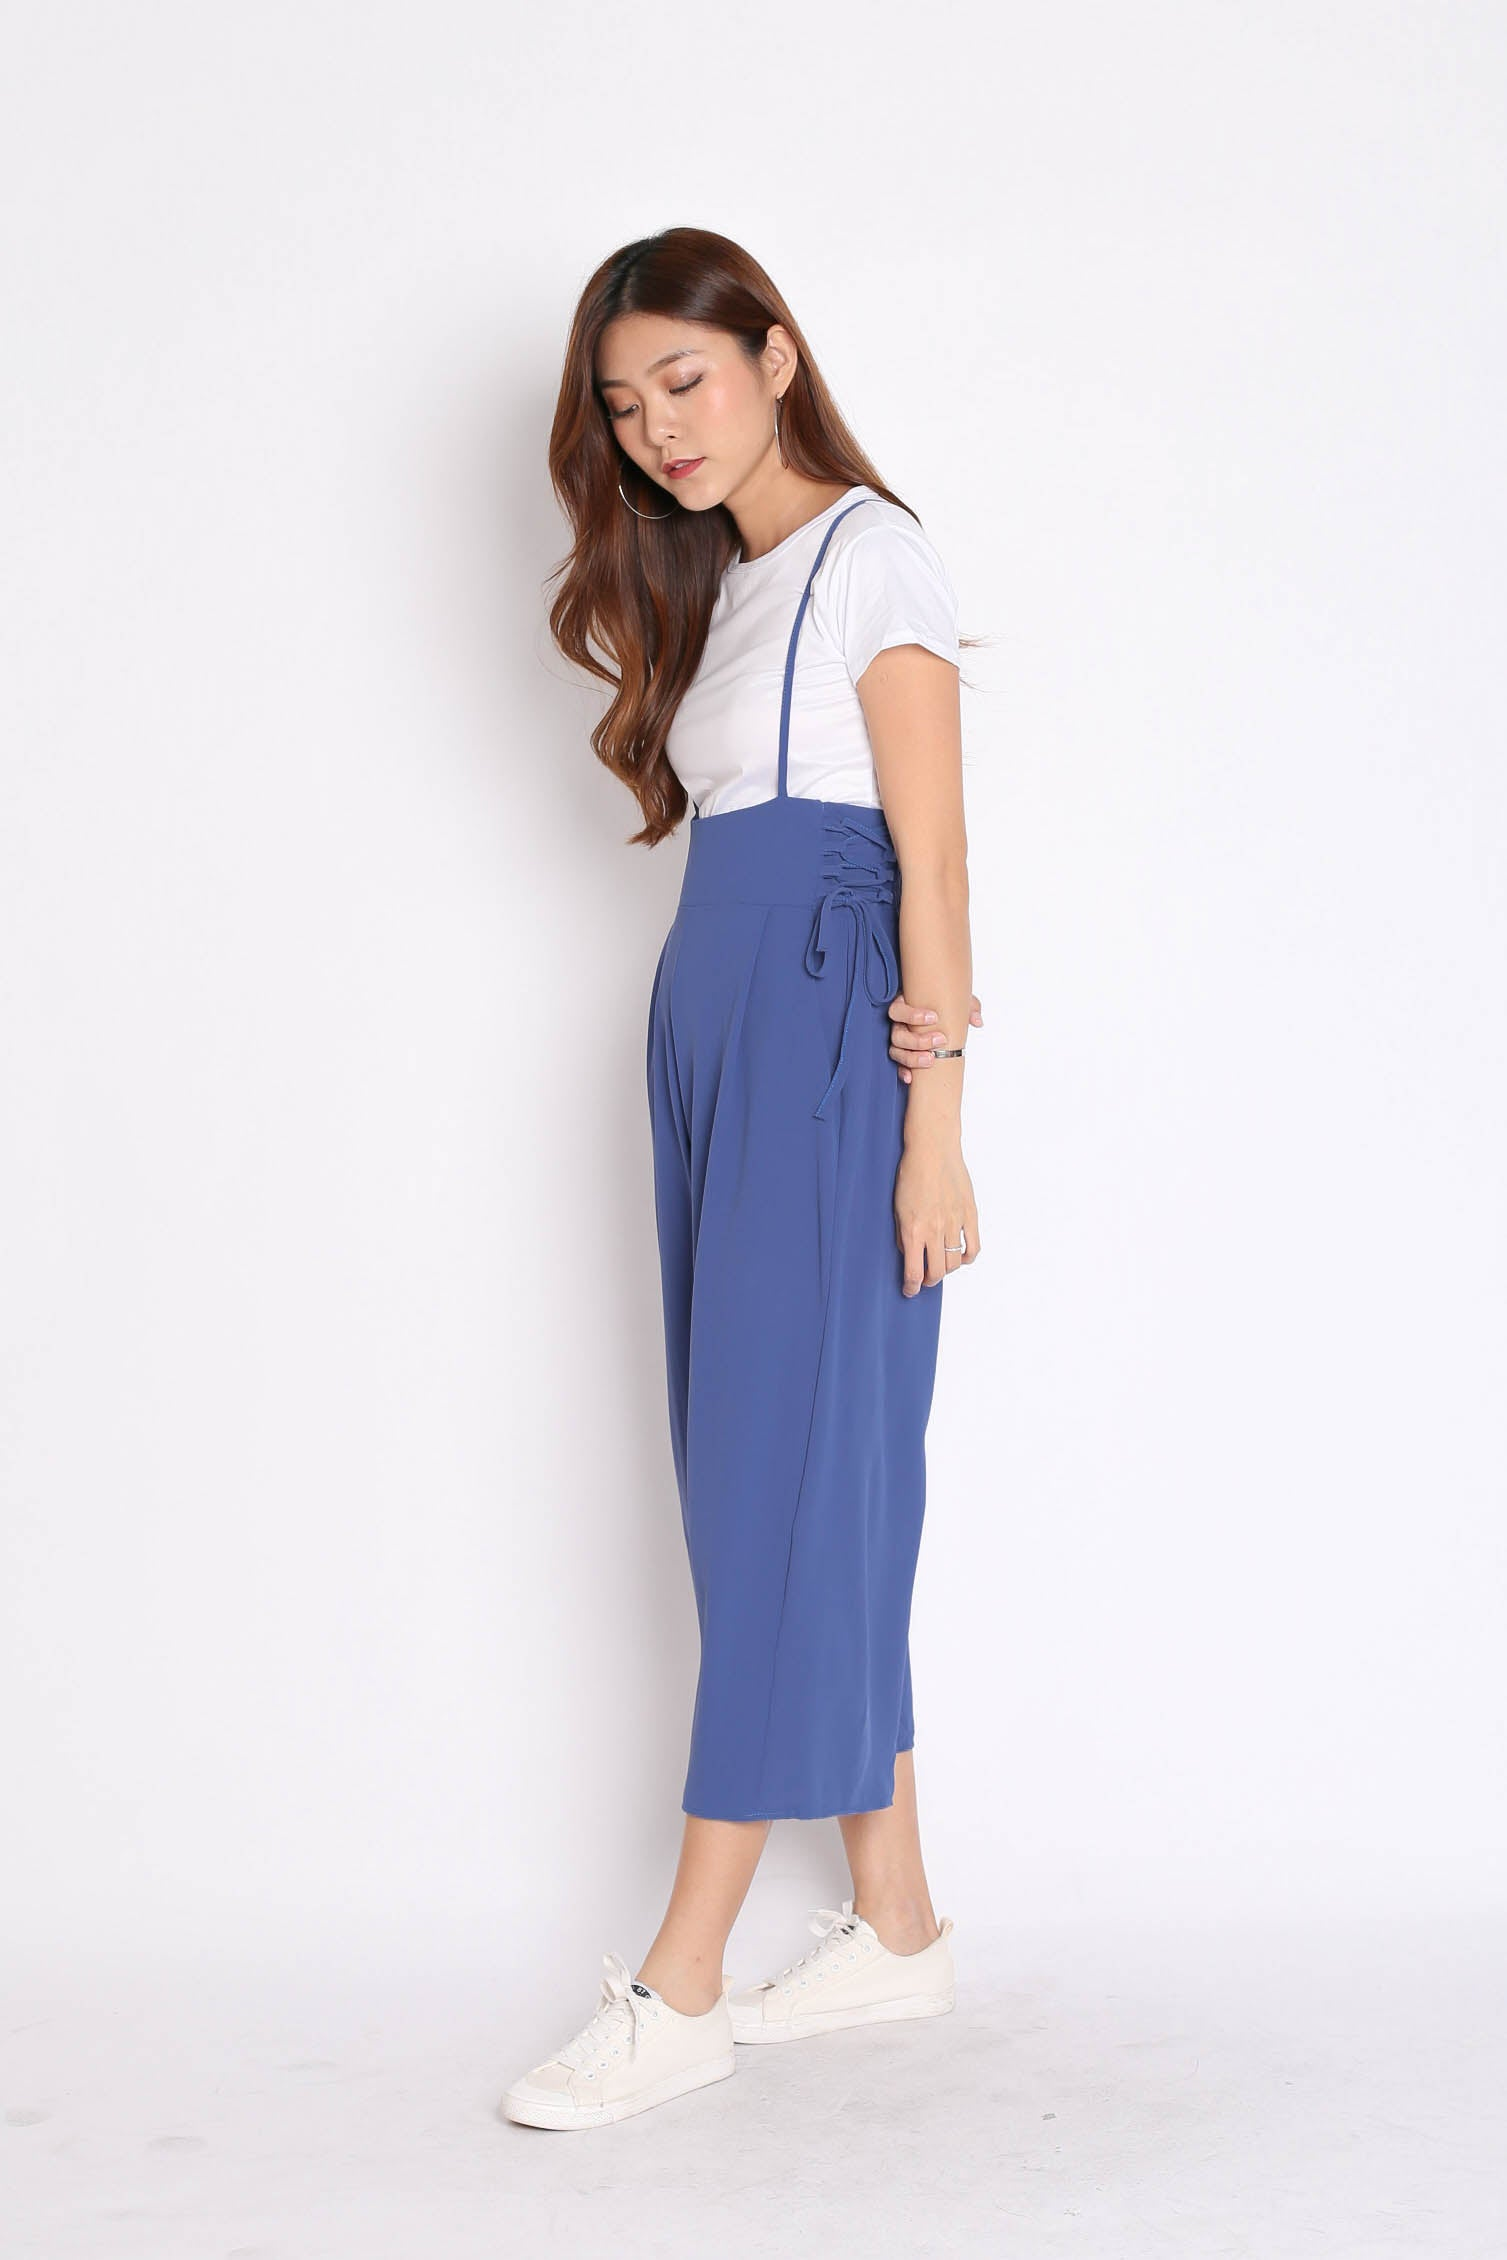 QOUNTY LACED DUNGAREE SET IN AZURE BLUE